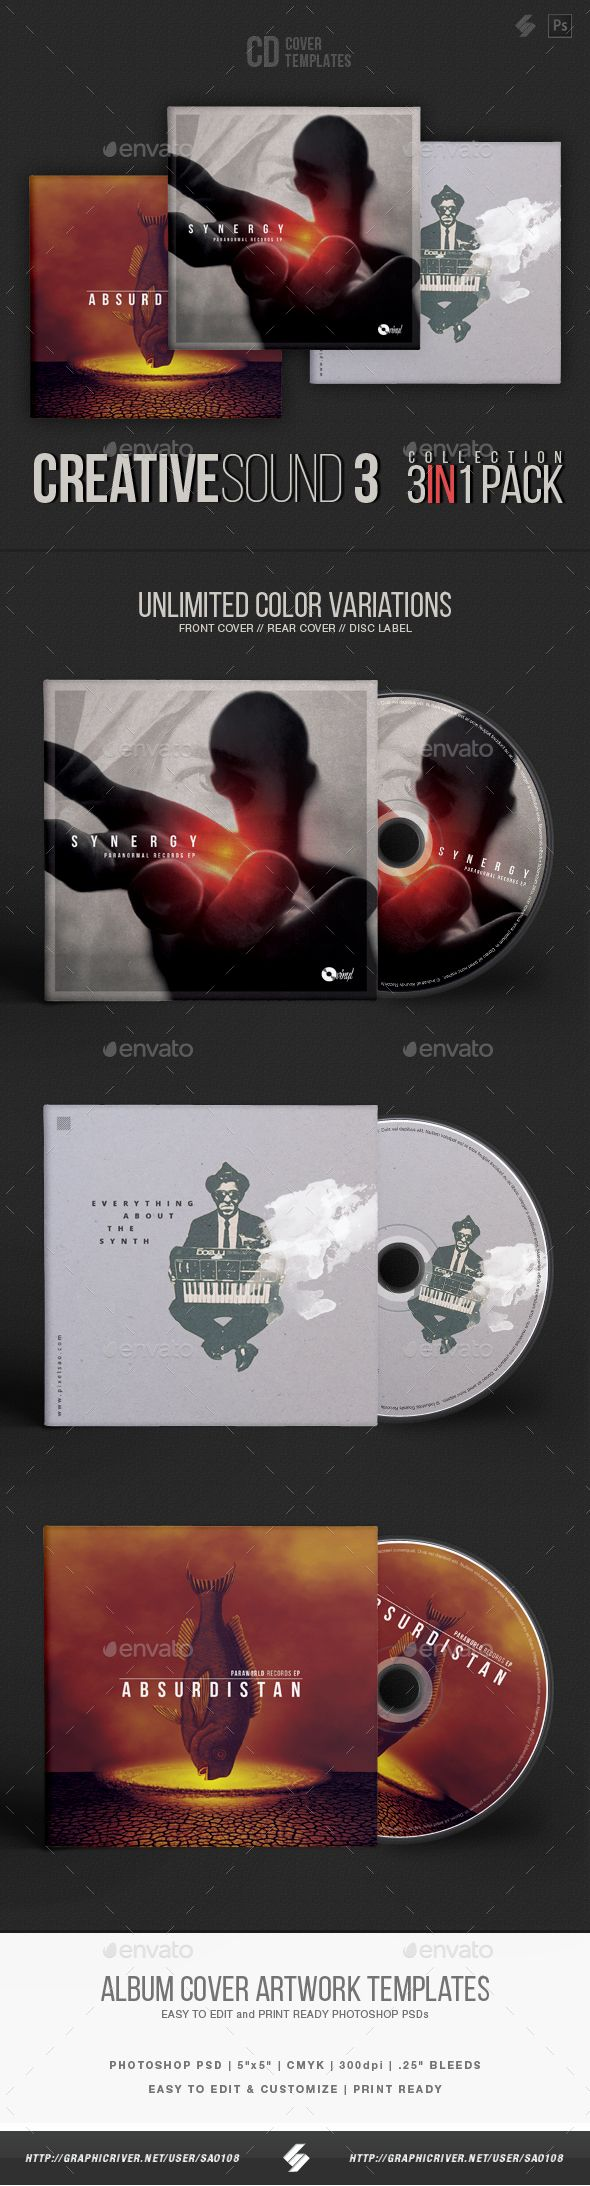 Creative Sound Collection 3  CD Cover Artwork Templates Bundle — Photoshop PSD #drum and bass #alternative • Available here ➝ https://graphicriver.net/item/creative-sound-collection-3-cd-cover-artwork-templates-bundle/20883987?ref=pxcr